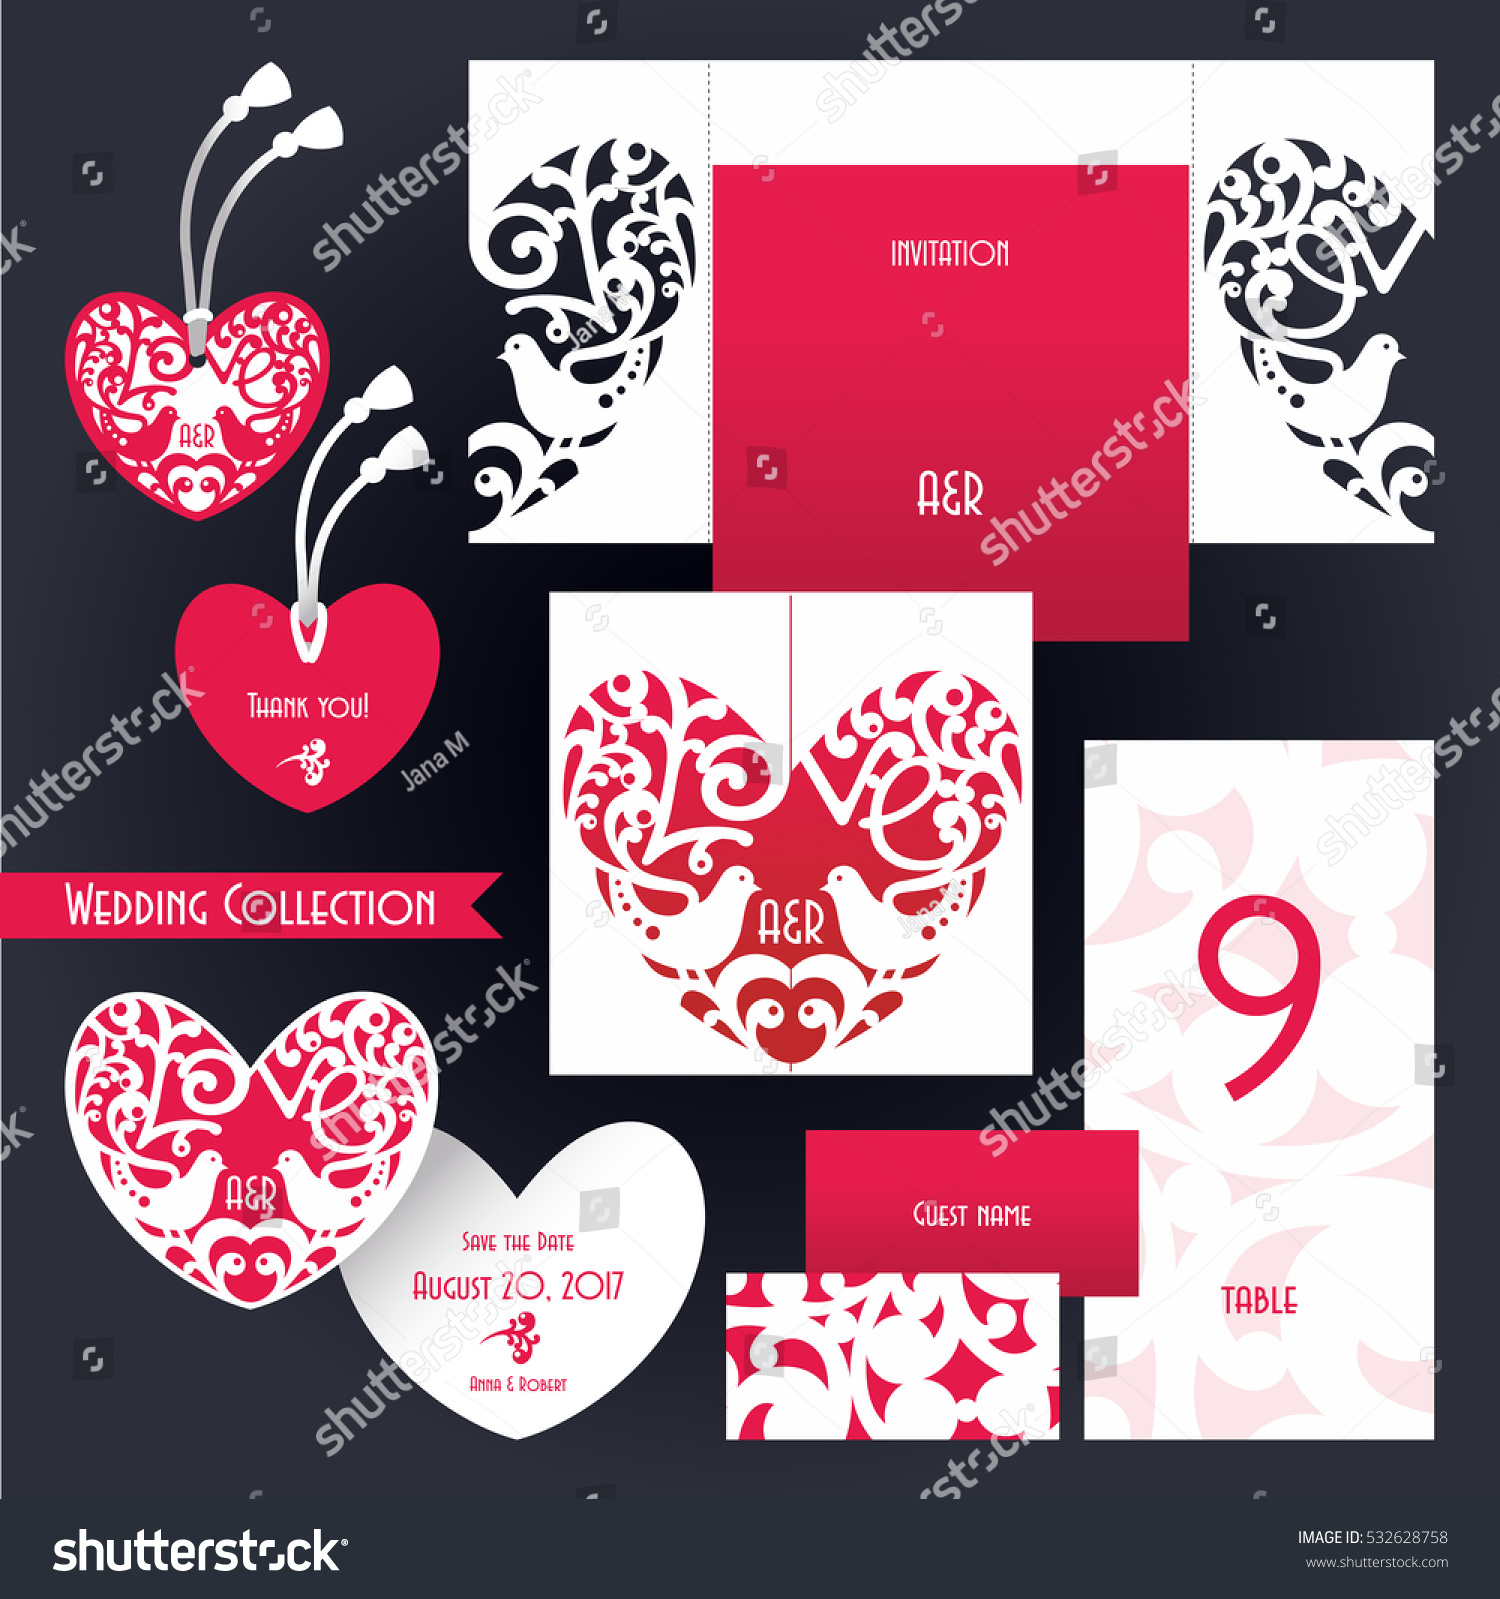 Wedding Collection Laser Cut Template Invitation Stock Vector ...